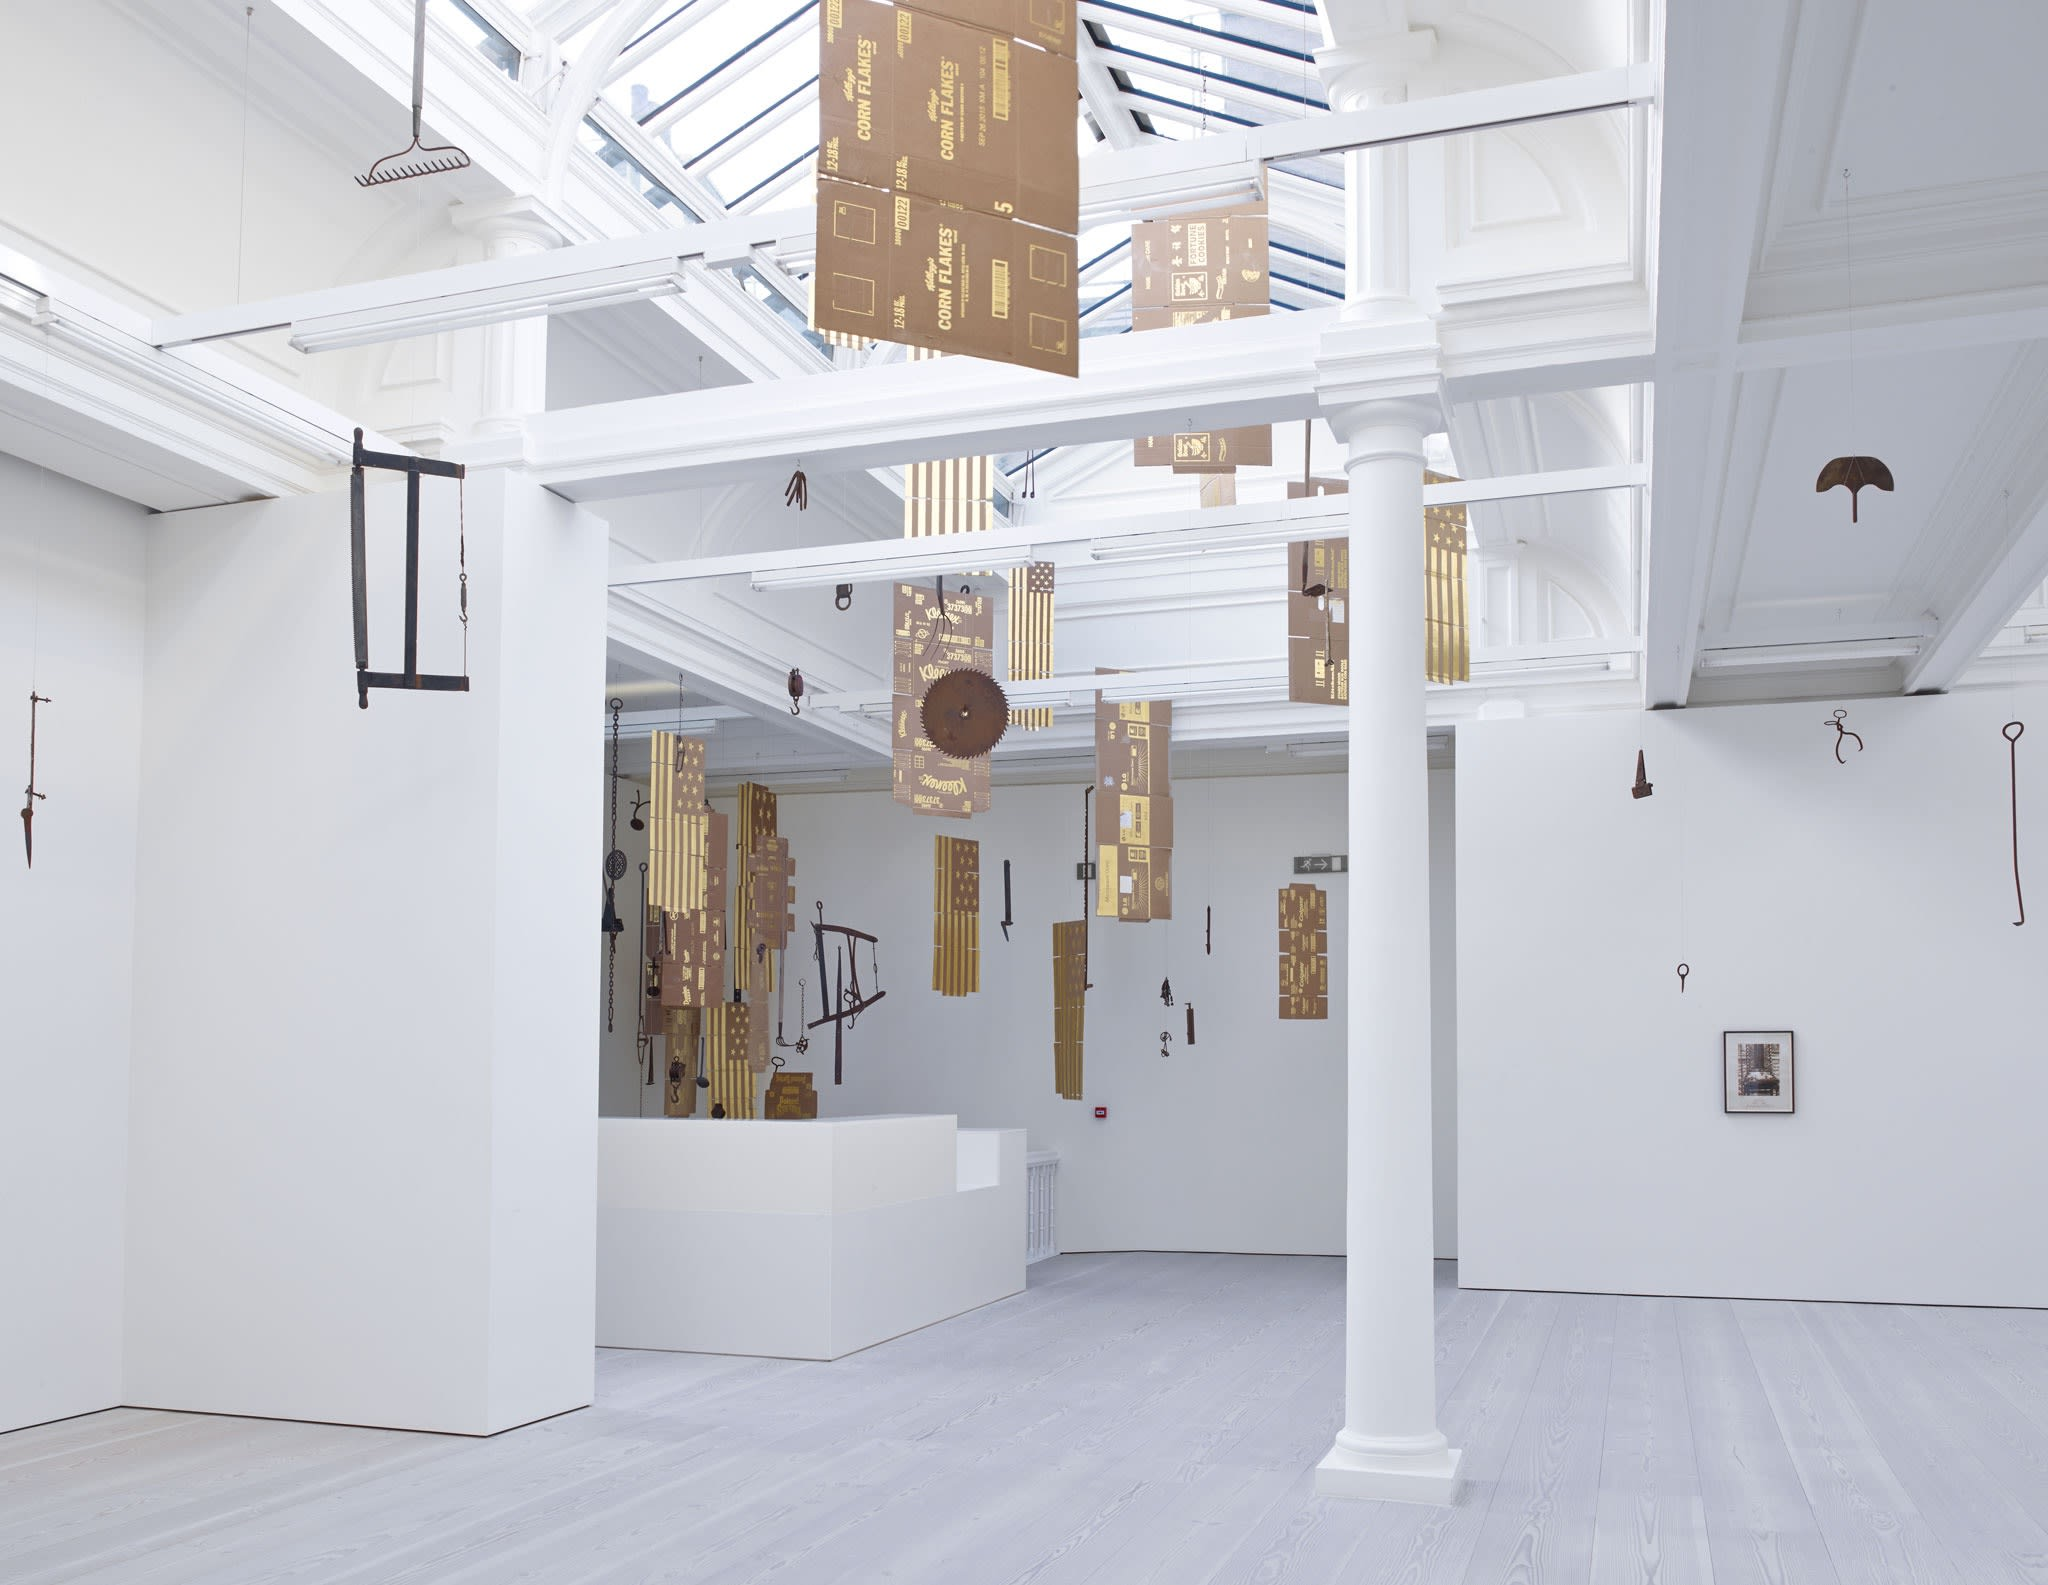 In a large white space with a long glass skylight, sculptures hang from the ceiling - most seem to be American flags, with 13 stars, made out of gold painted cardboard. Another is an unfolded Corn Flakes box, made from the same material.